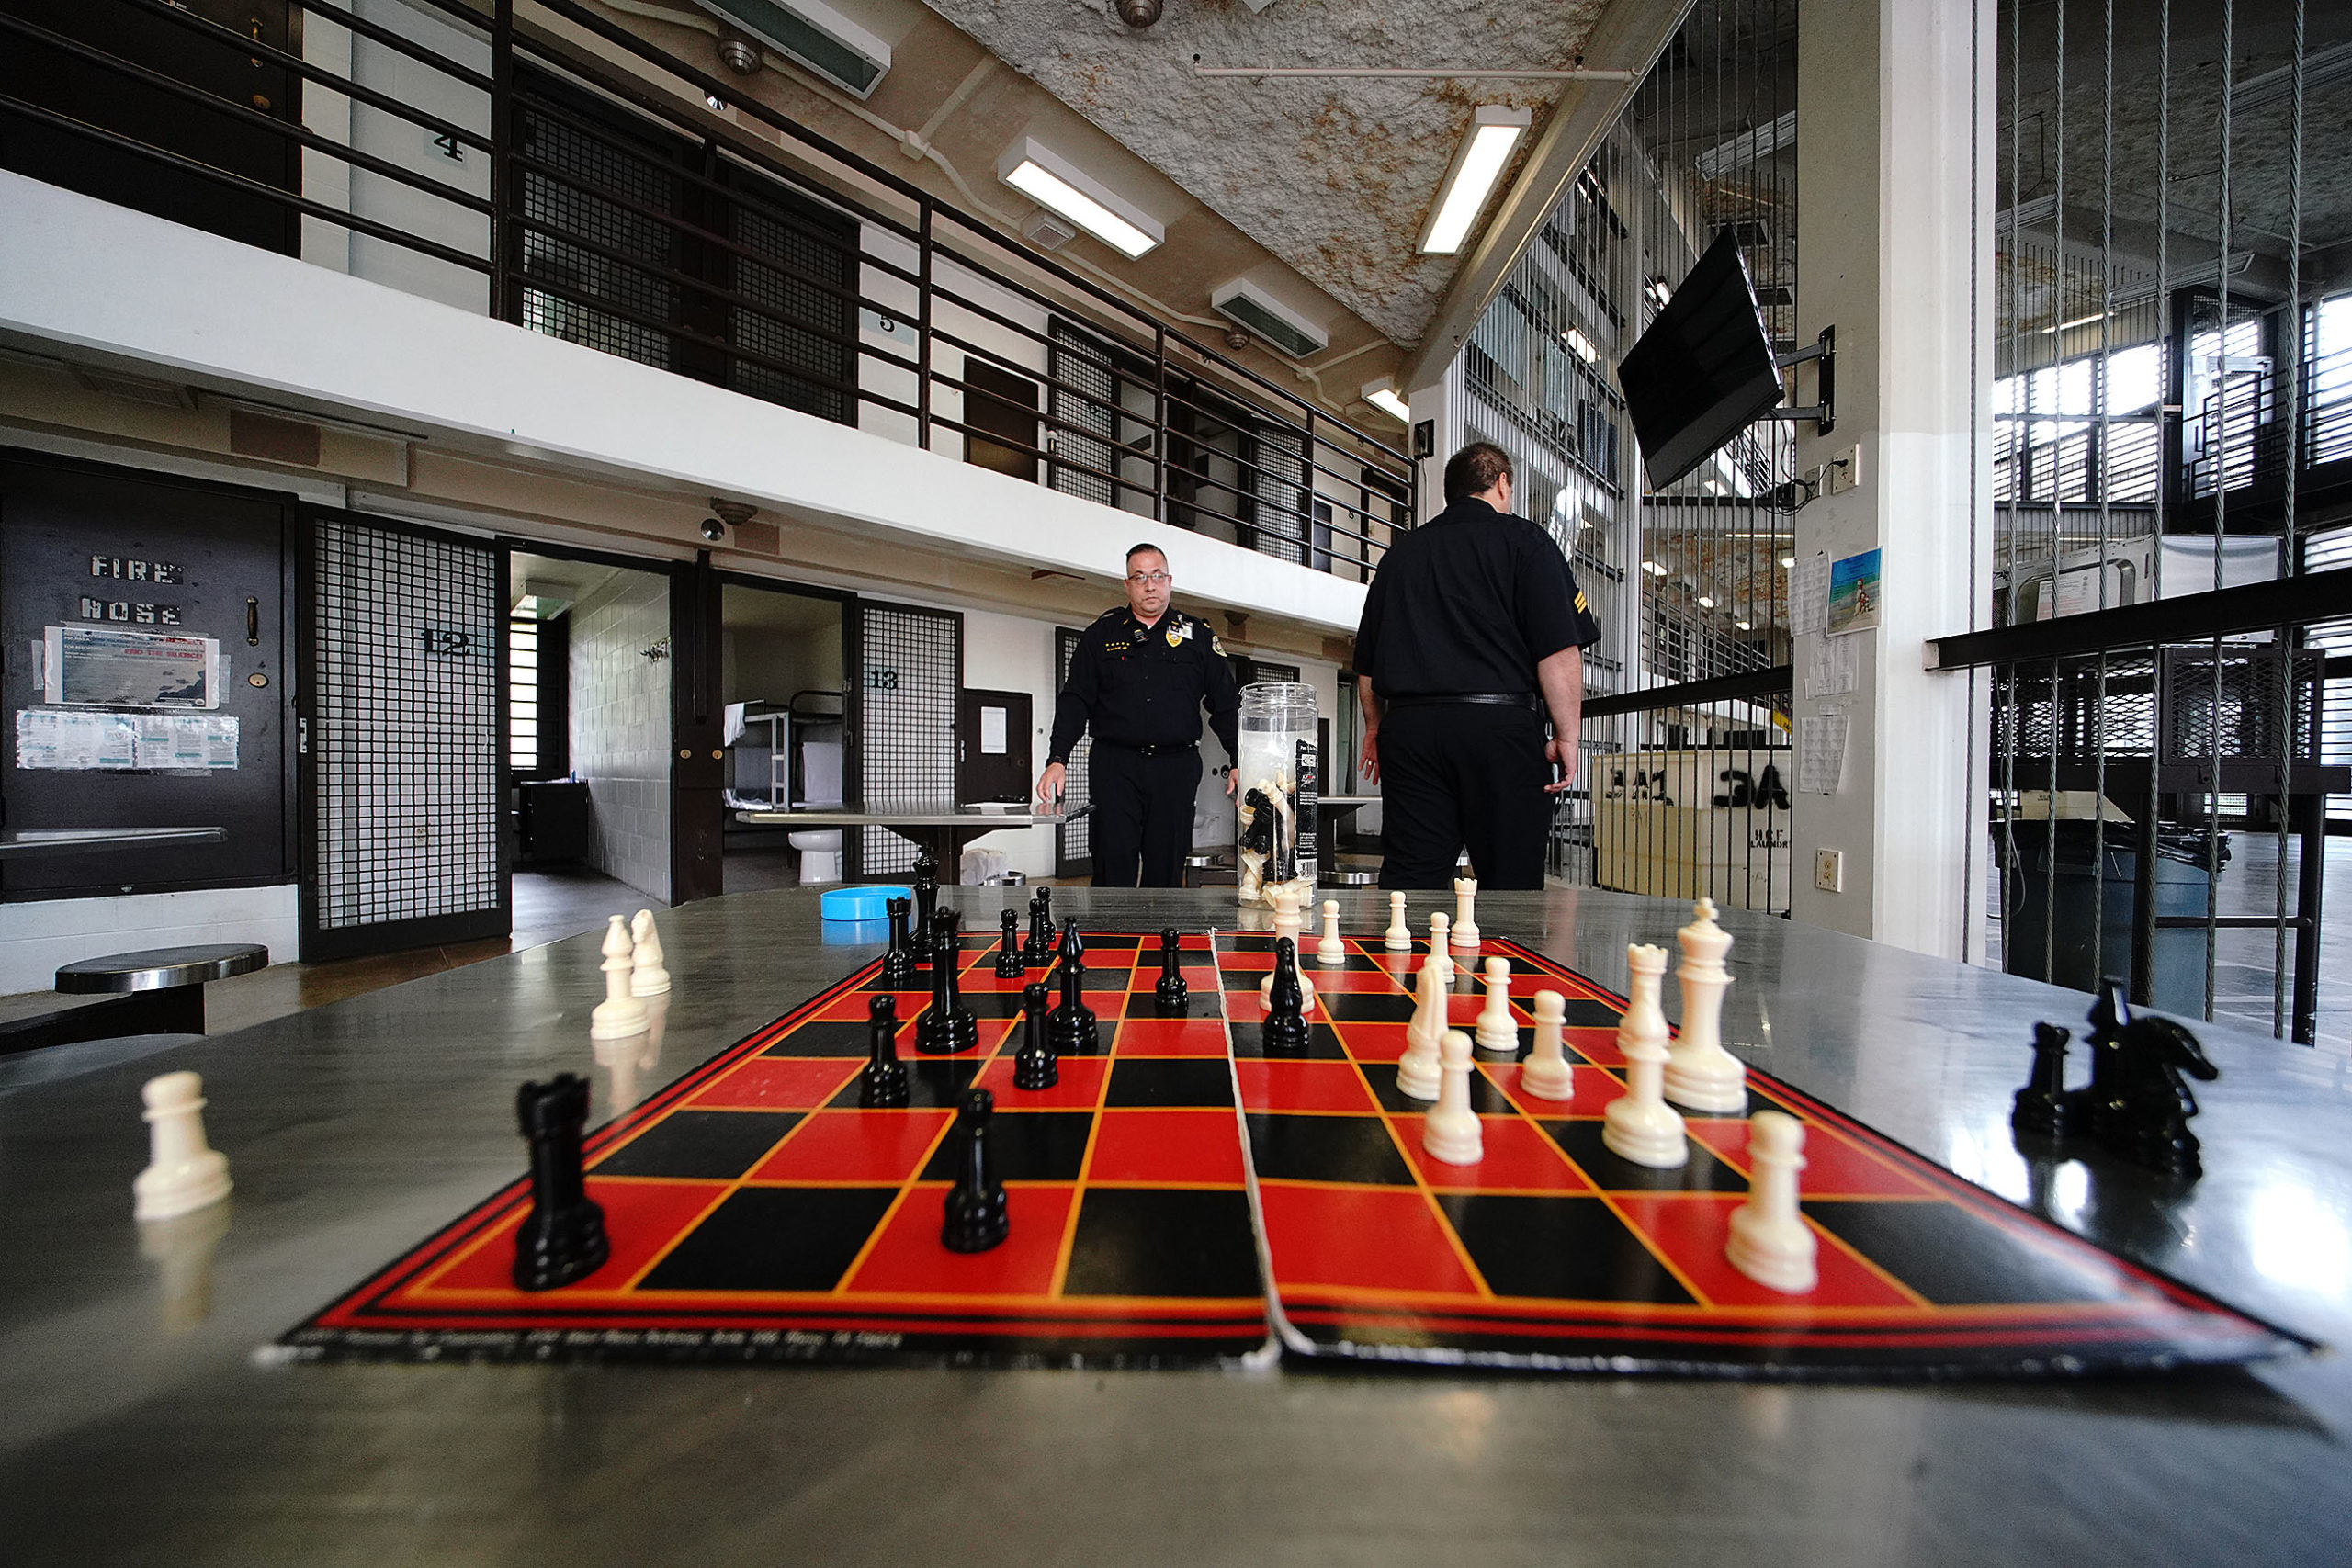 <p>This chess game was interrupted when the media was escorted into the module at Halawa. This particular module houses general population inmates, says Acting Chief of Security Calvin Mock. Halawa only houses convicted inmates and is not overcrowded, so Mock says the facility does not have to triple bunk.</p>